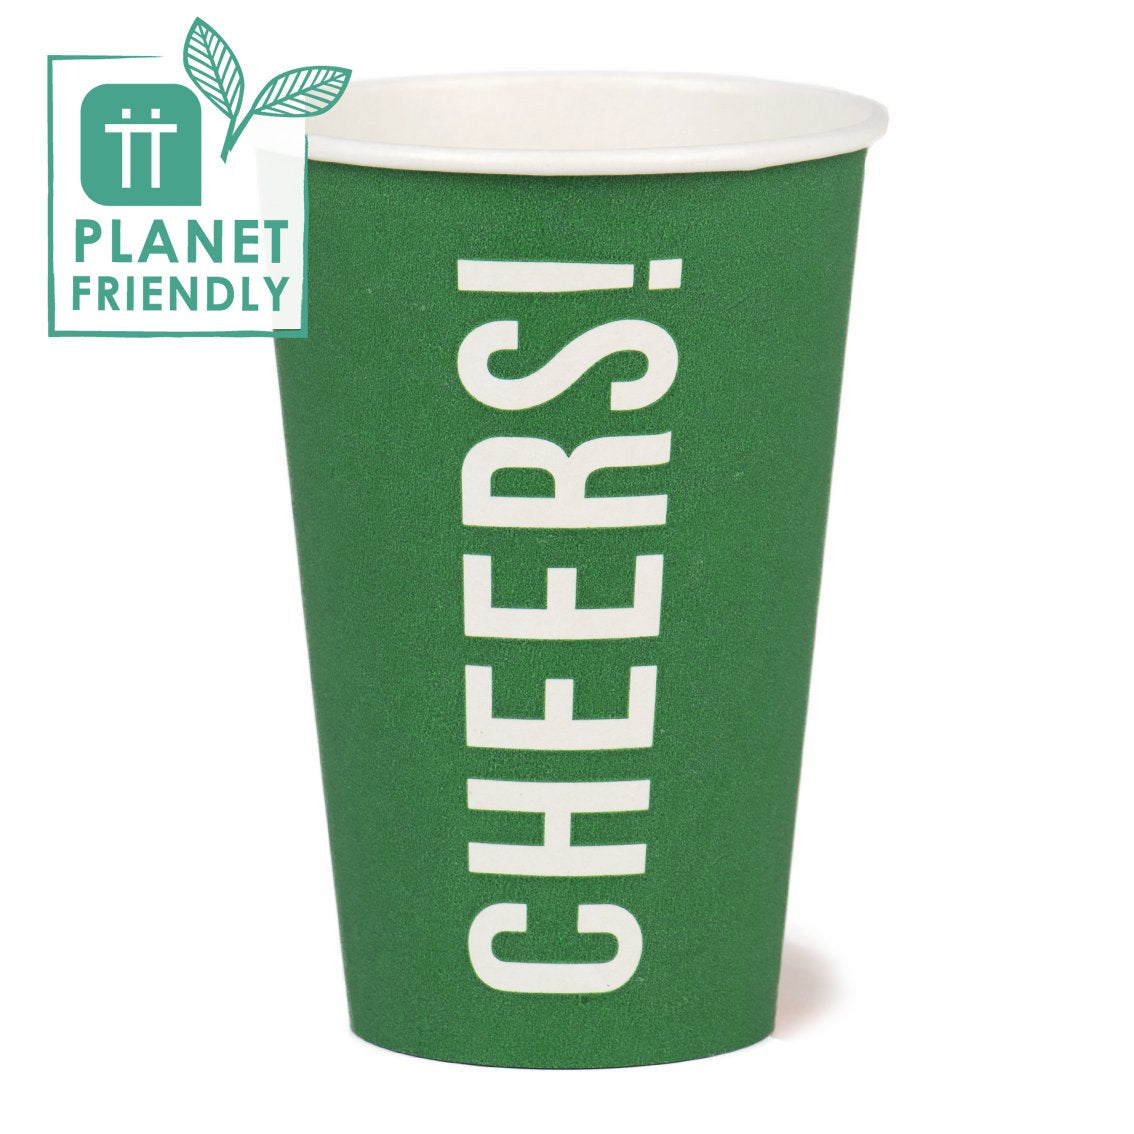 Planet Friendly - CHEERS! Large Green Paper Cups